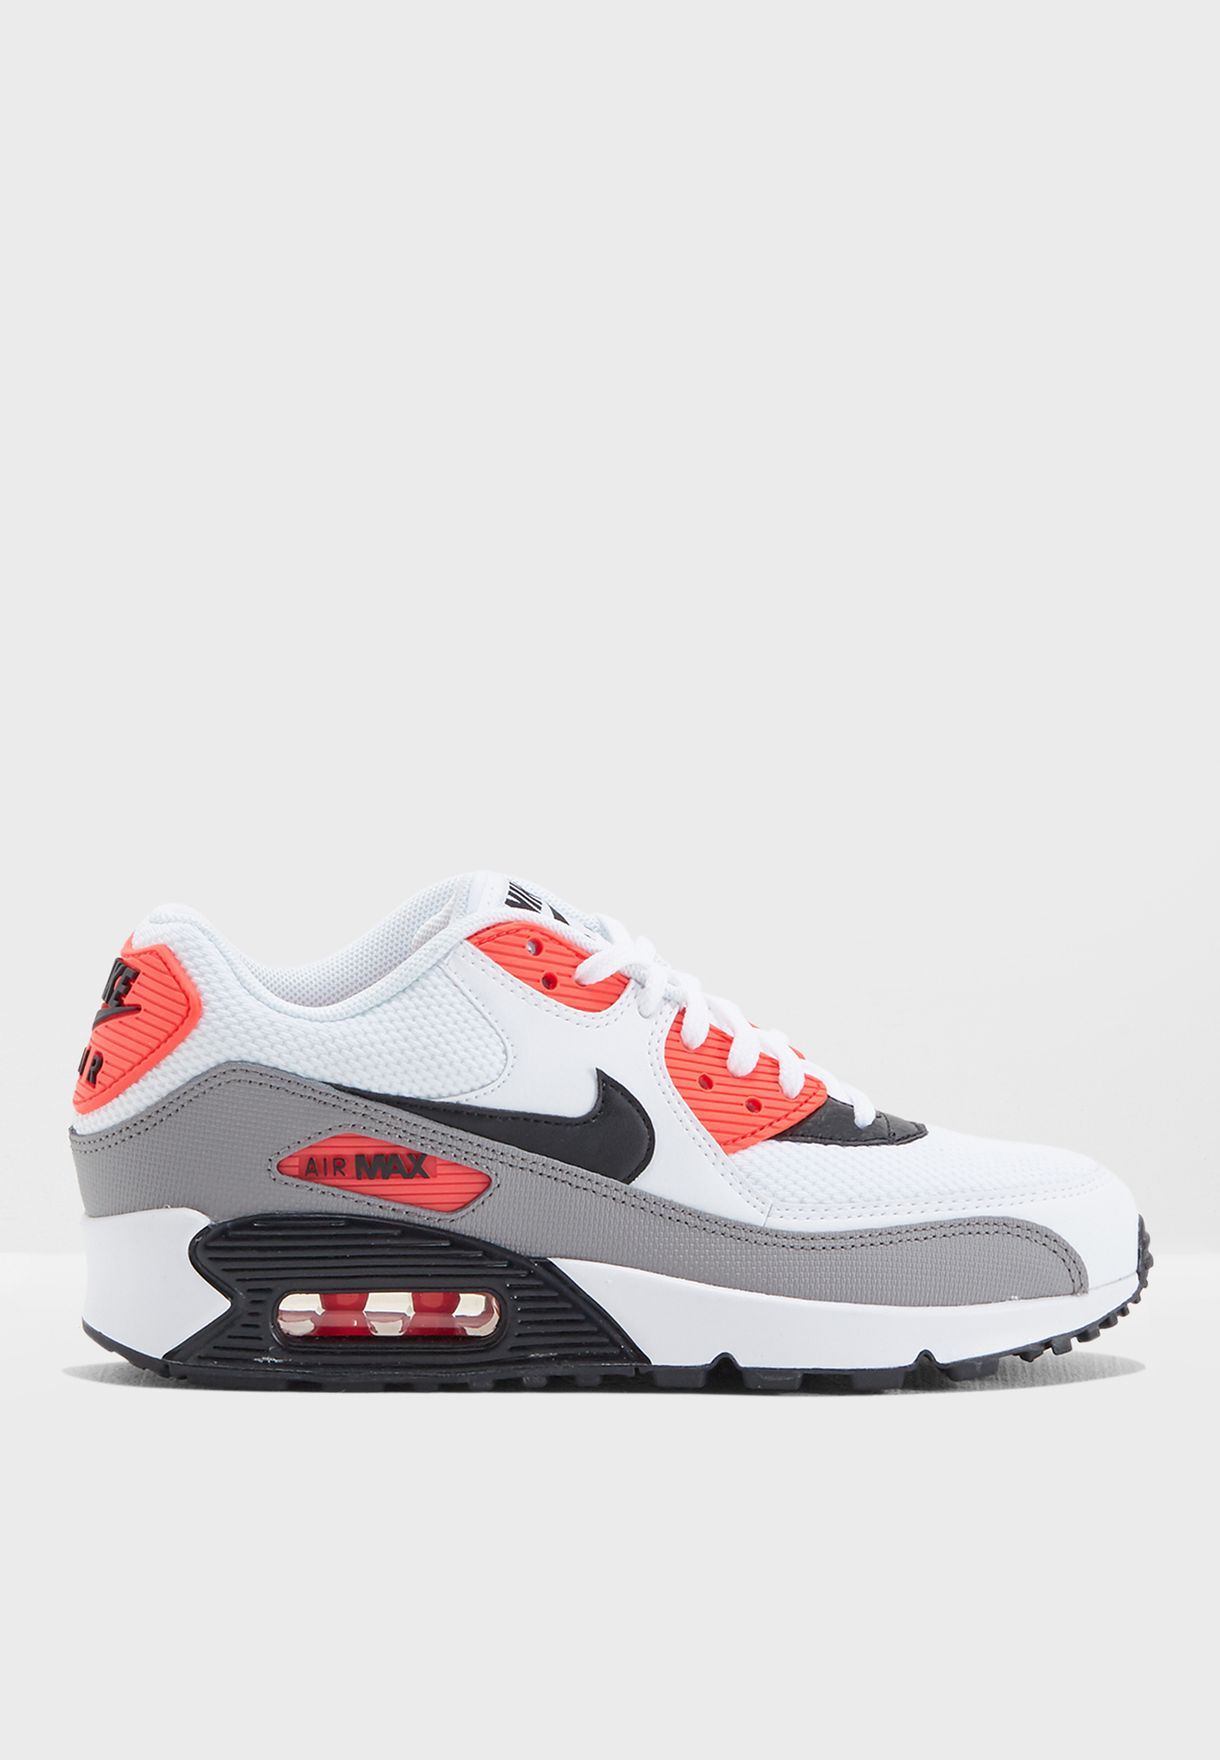 2817cbadb5 Shop Nike multicolor Air Max 90 325213-132 for Women in Kuwait ...